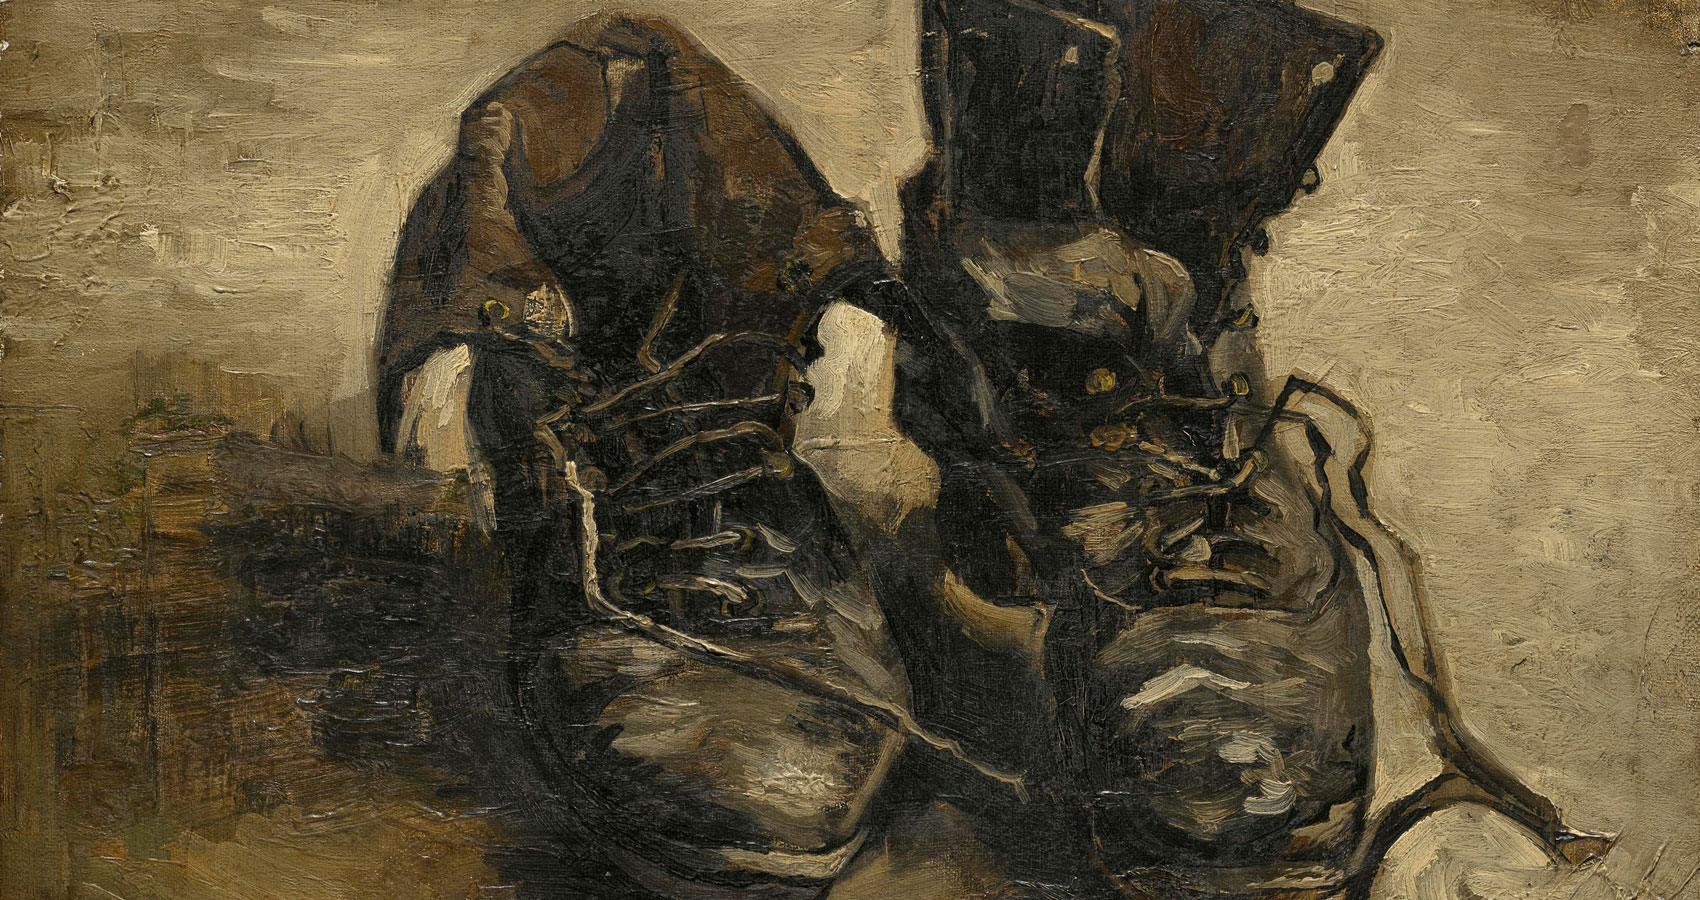 Old Shoes, a short story written by Trisha at Spillwords.com